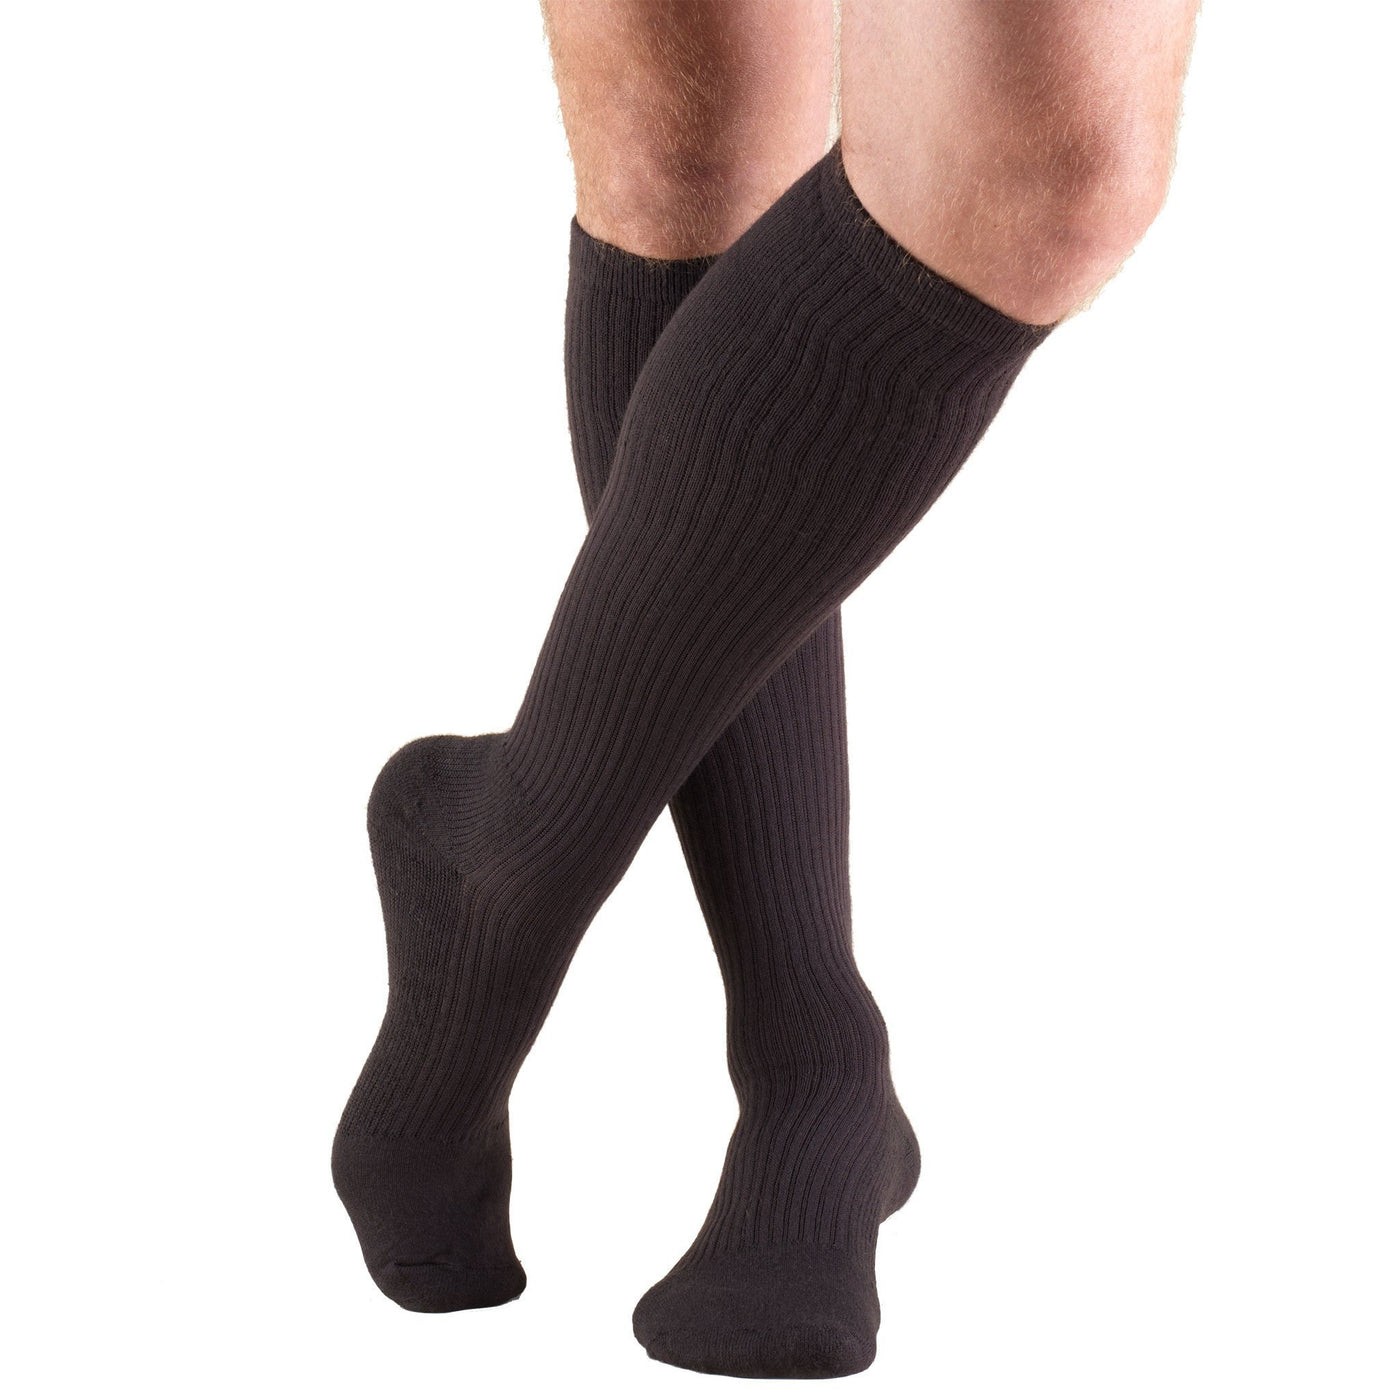 24028eed65e MEN S KNEE HIGH CASUAL STYLE COMPRESSION SOCKS